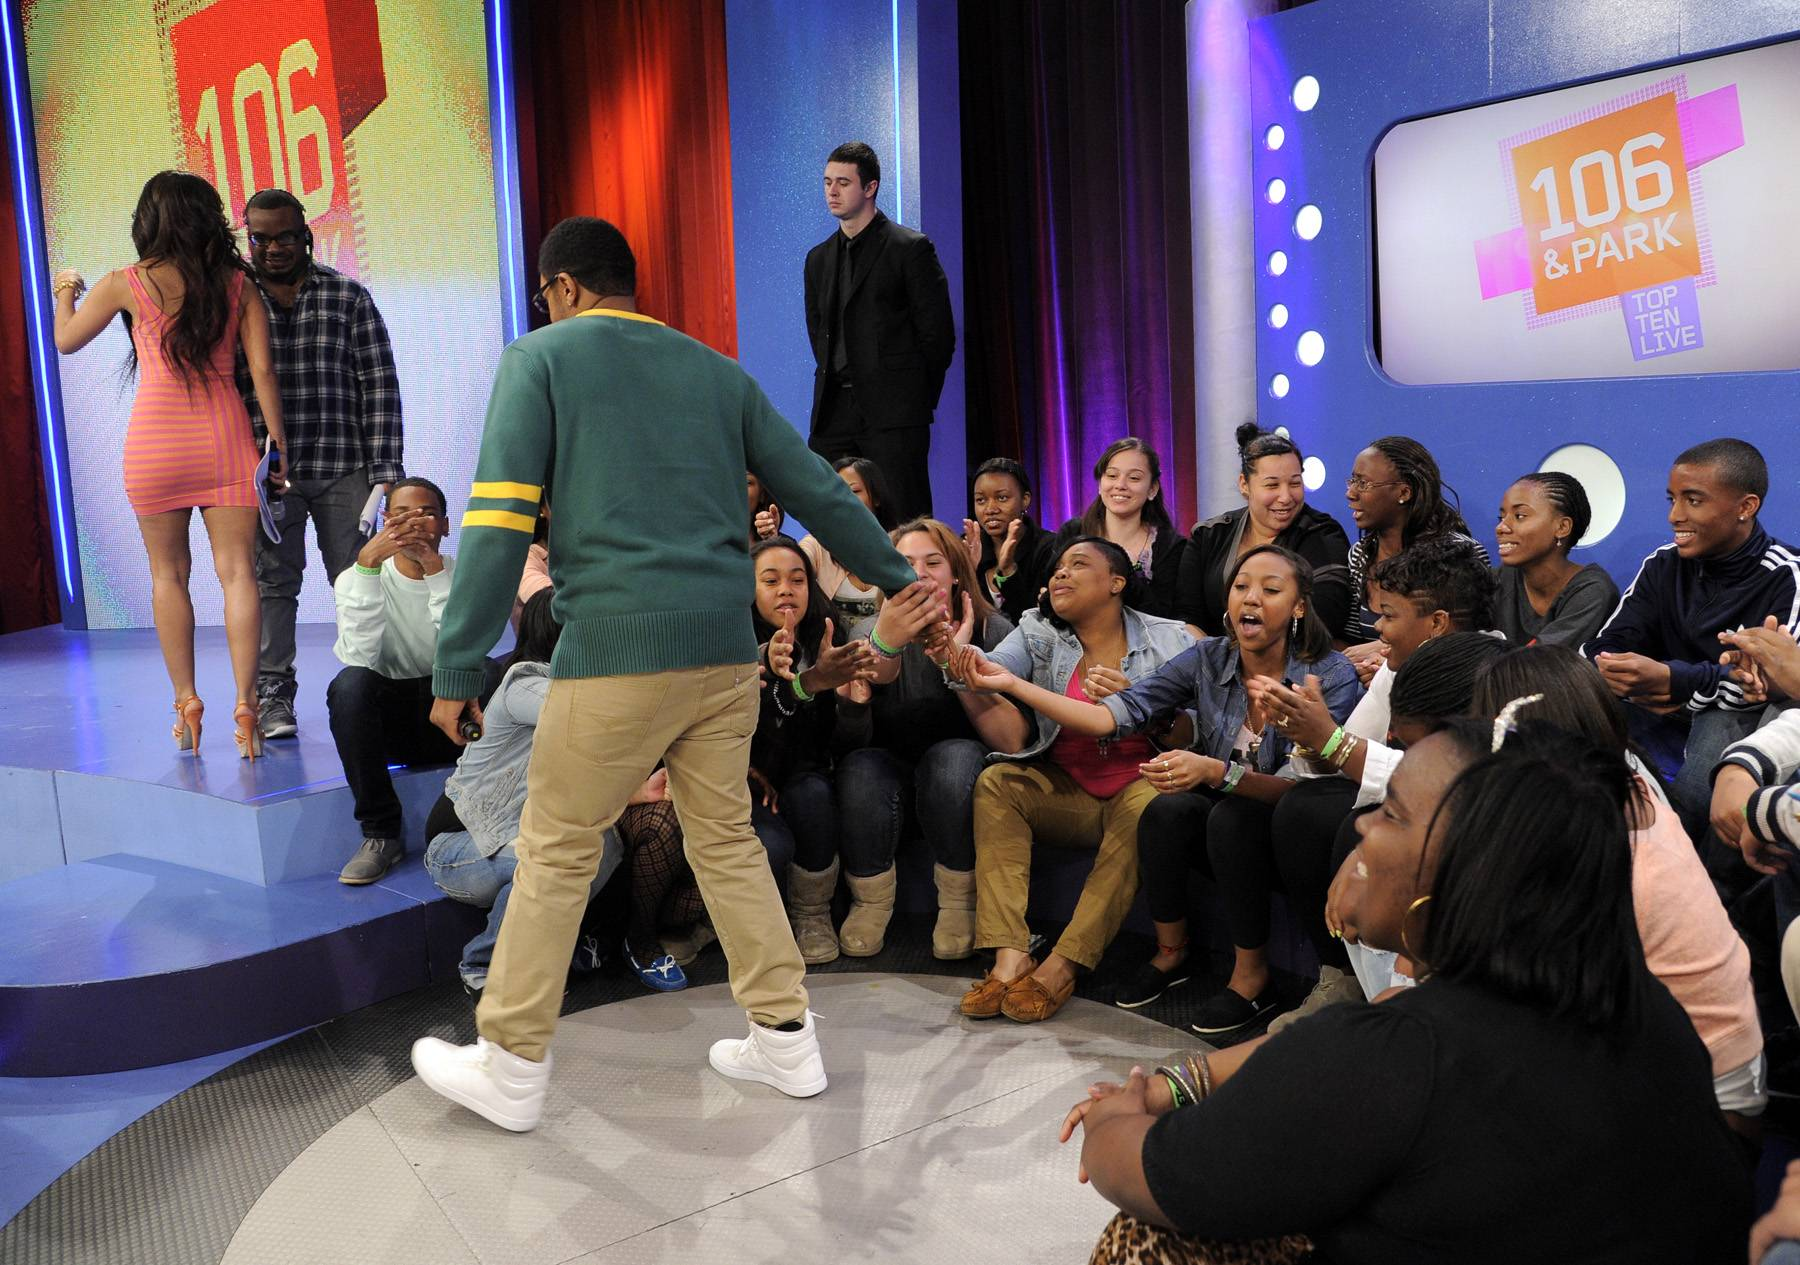 Exiting For a Moment - Pooch Hall acknowledges fans at 106 & Park, April 12, 2012. (Photo: John Ricard / BET)